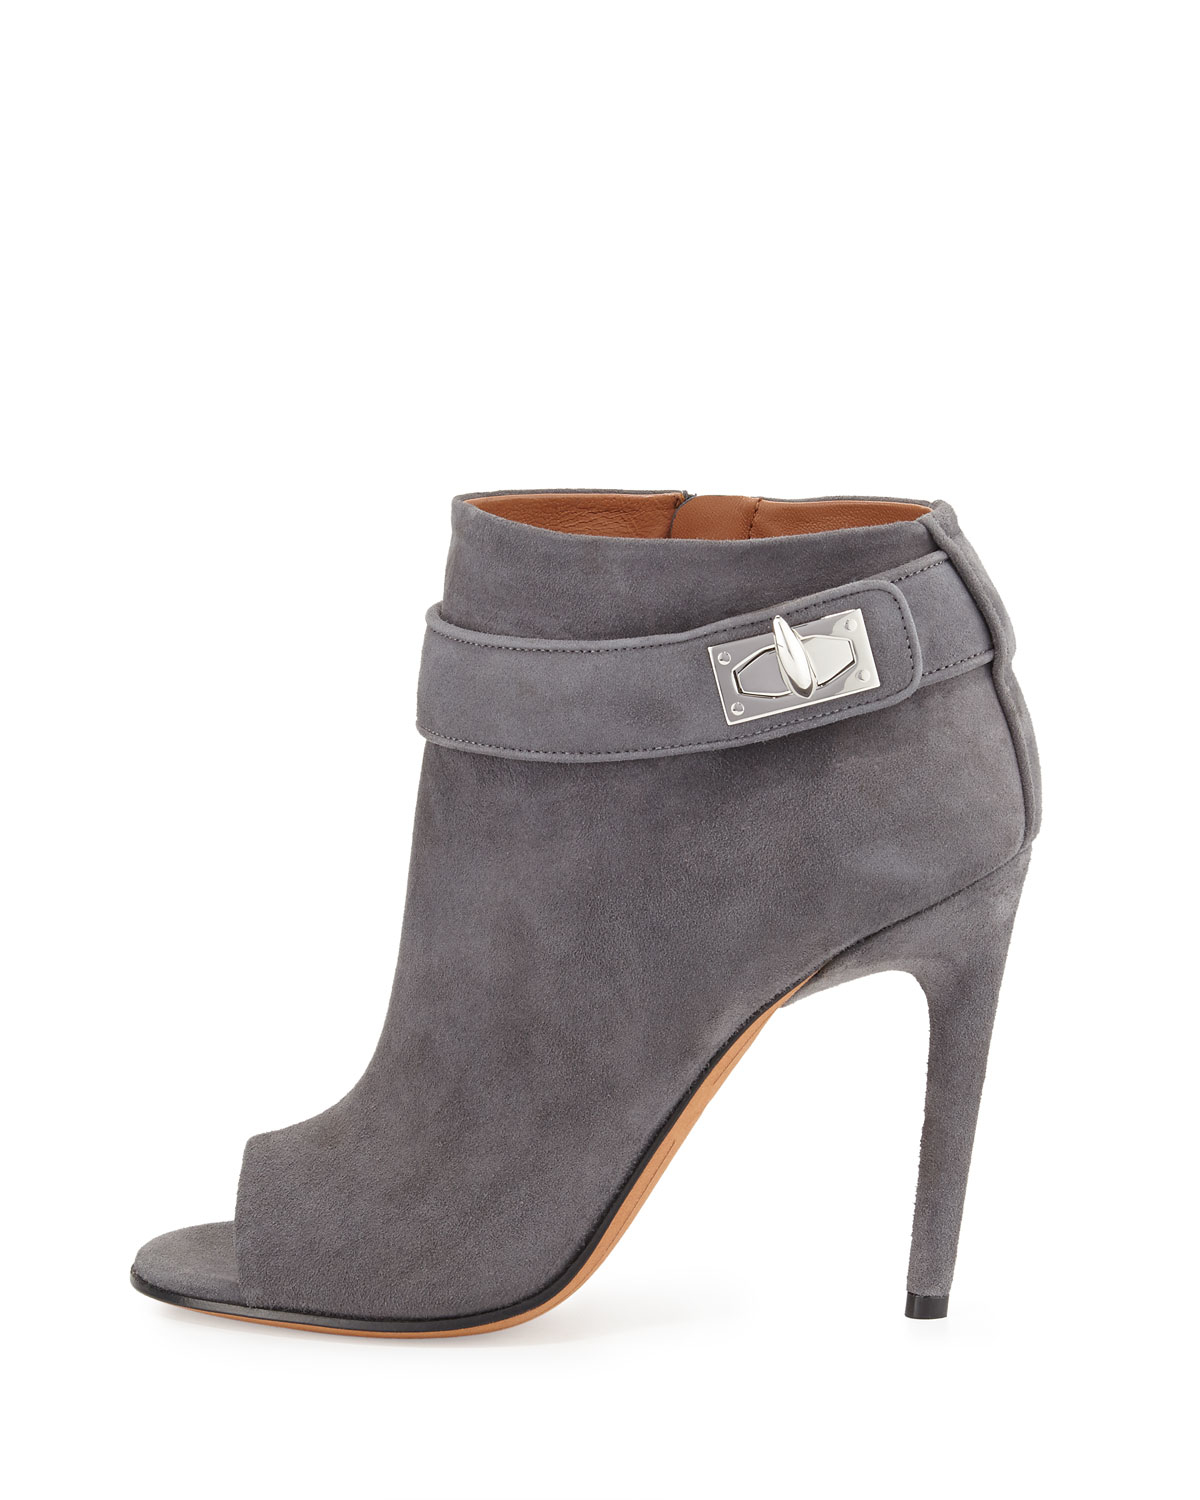 Givenchy Suede Peep-Toe Booties free shipping from china official sale online great deals online free shipping 100% guaranteed purchase online 1pSvh1